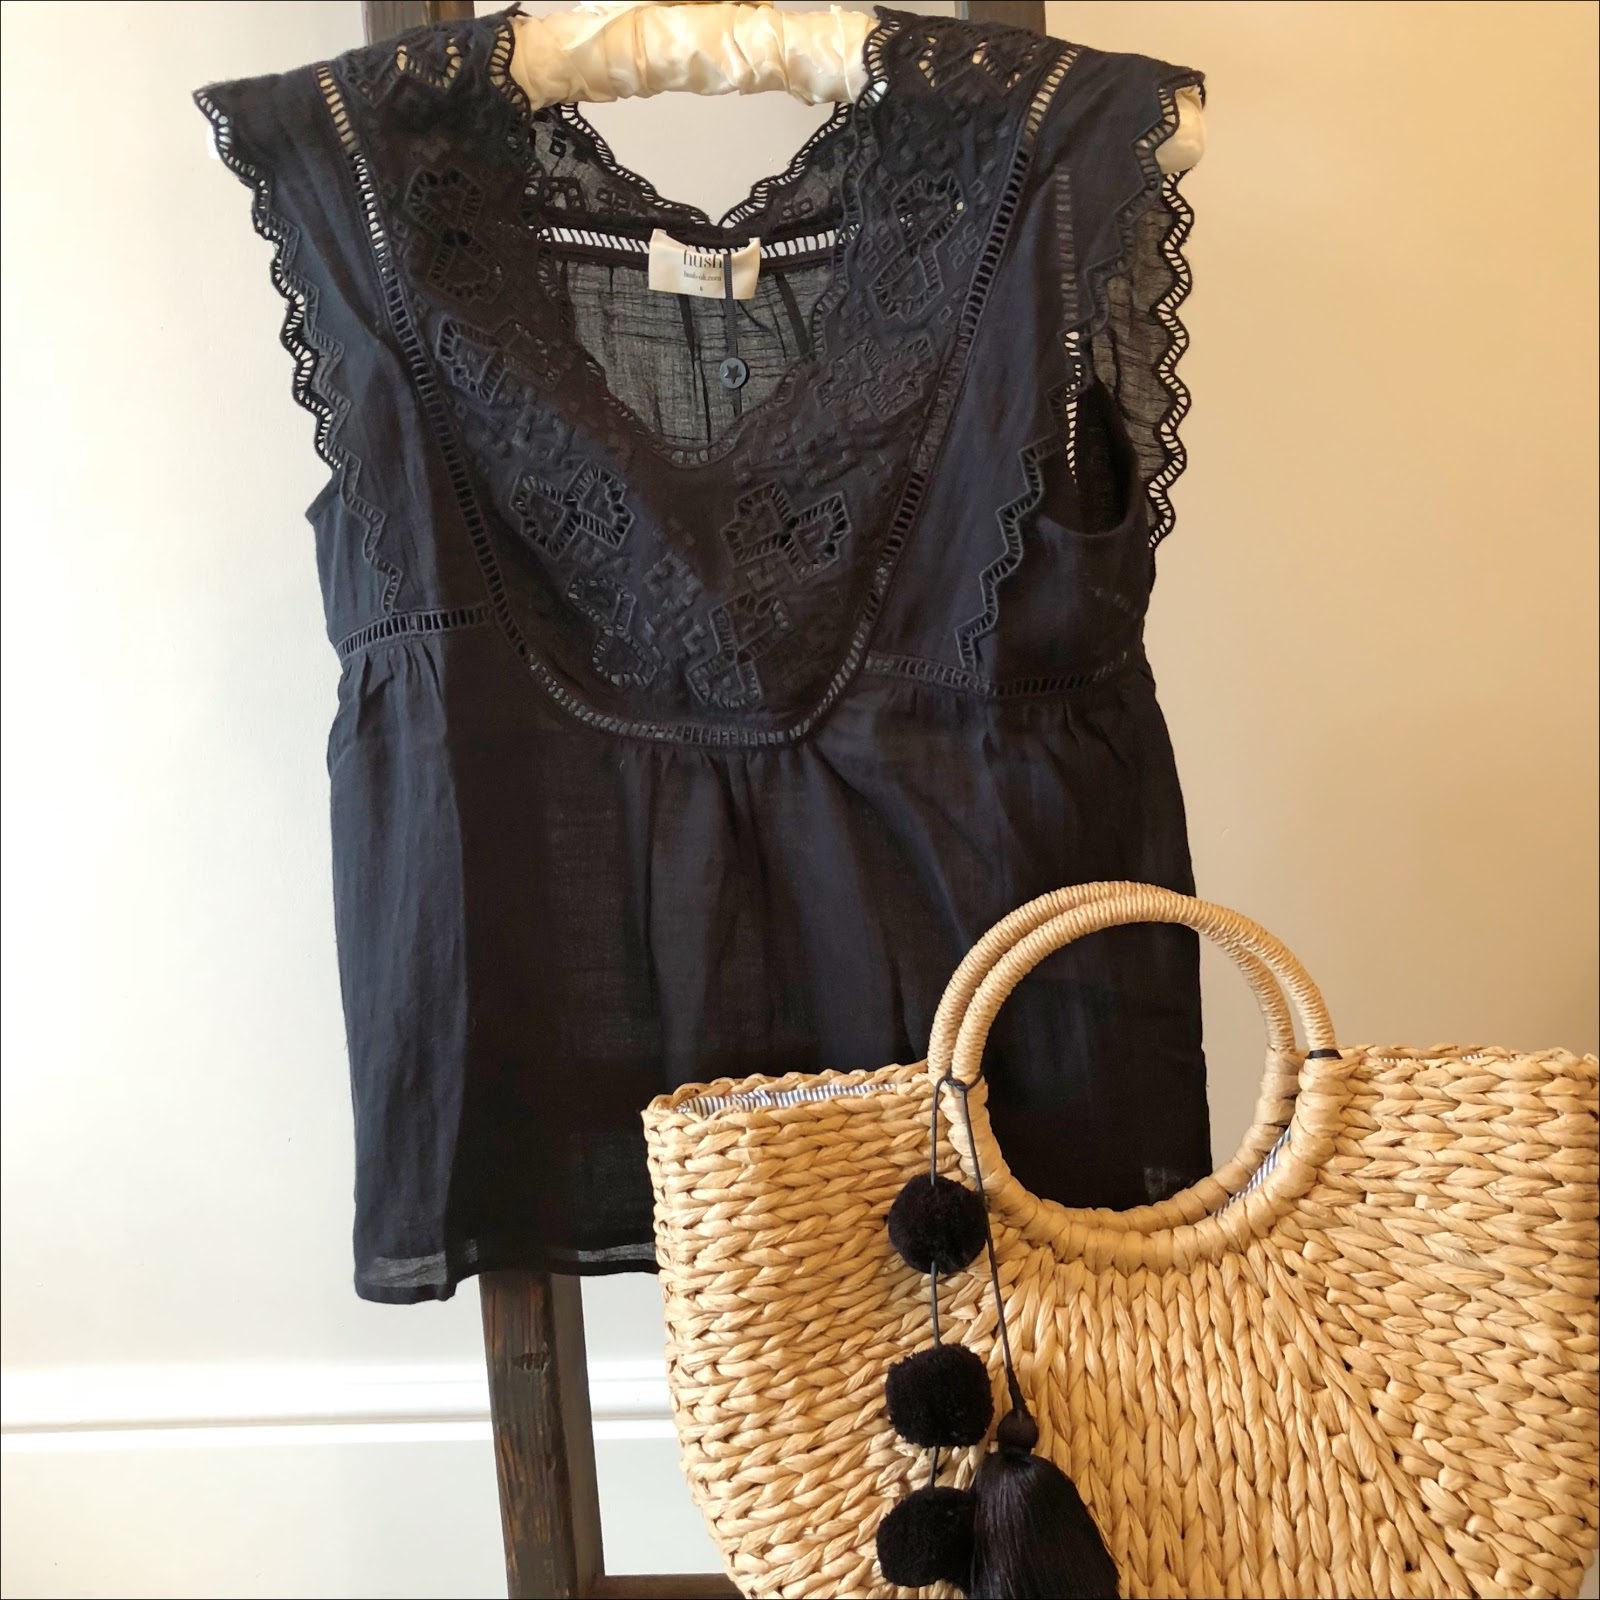 my midlife fashion, hush homewear, hush lace cut out top, hush st barts bag